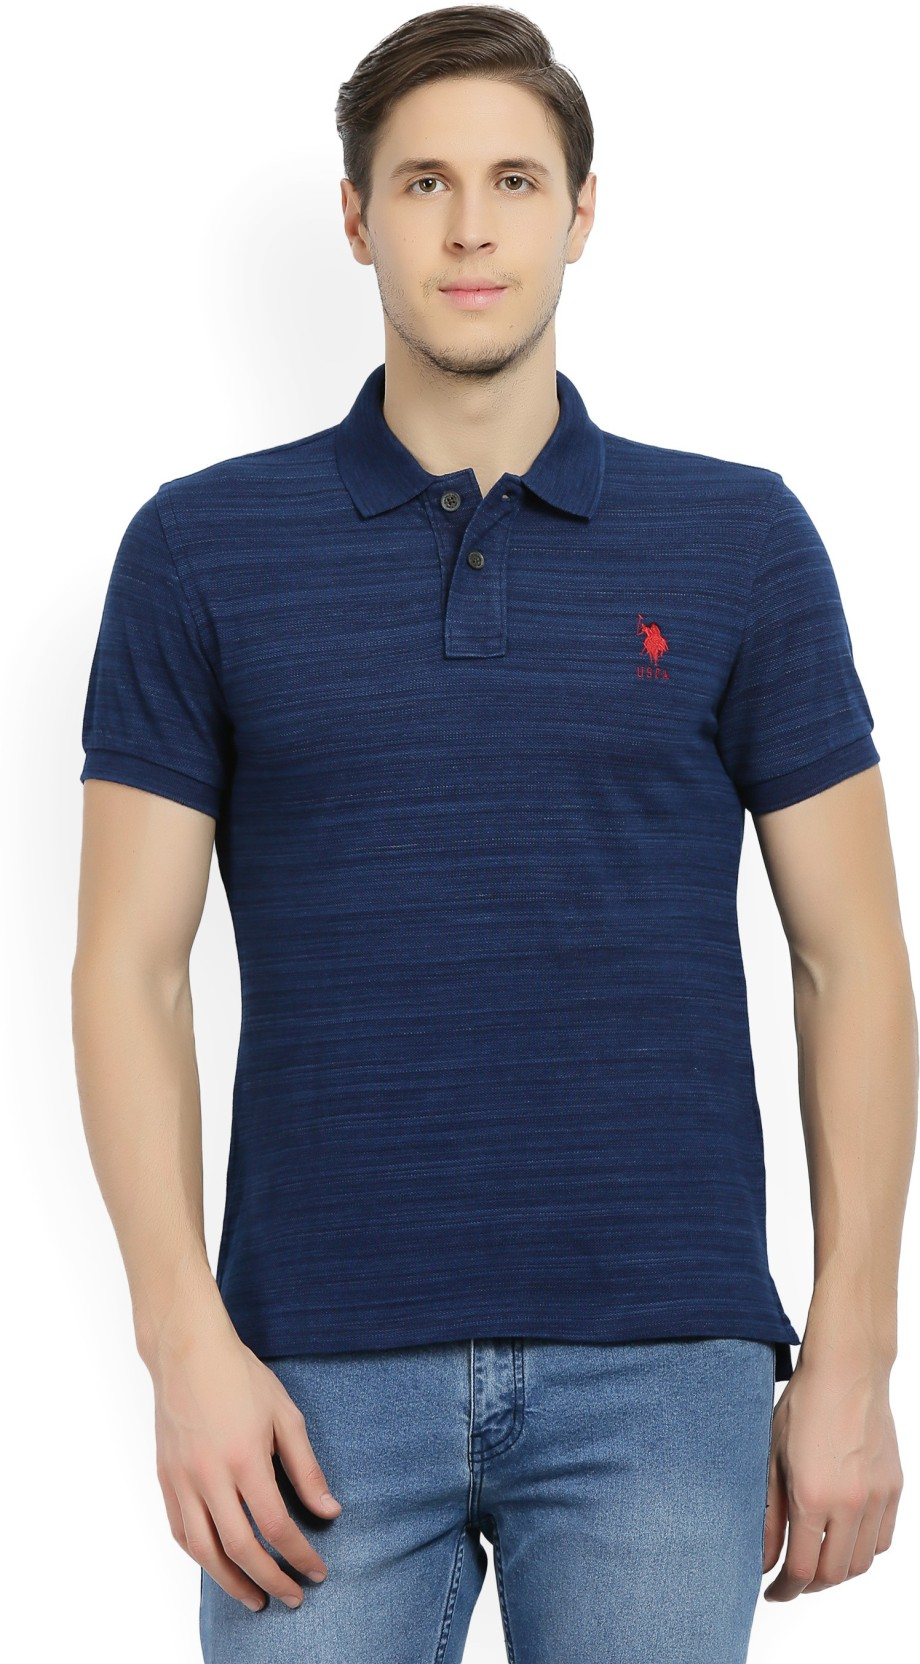 de851867 Us Polo Assn T Shirts Myntra – EDGE Engineering and Consulting Limited